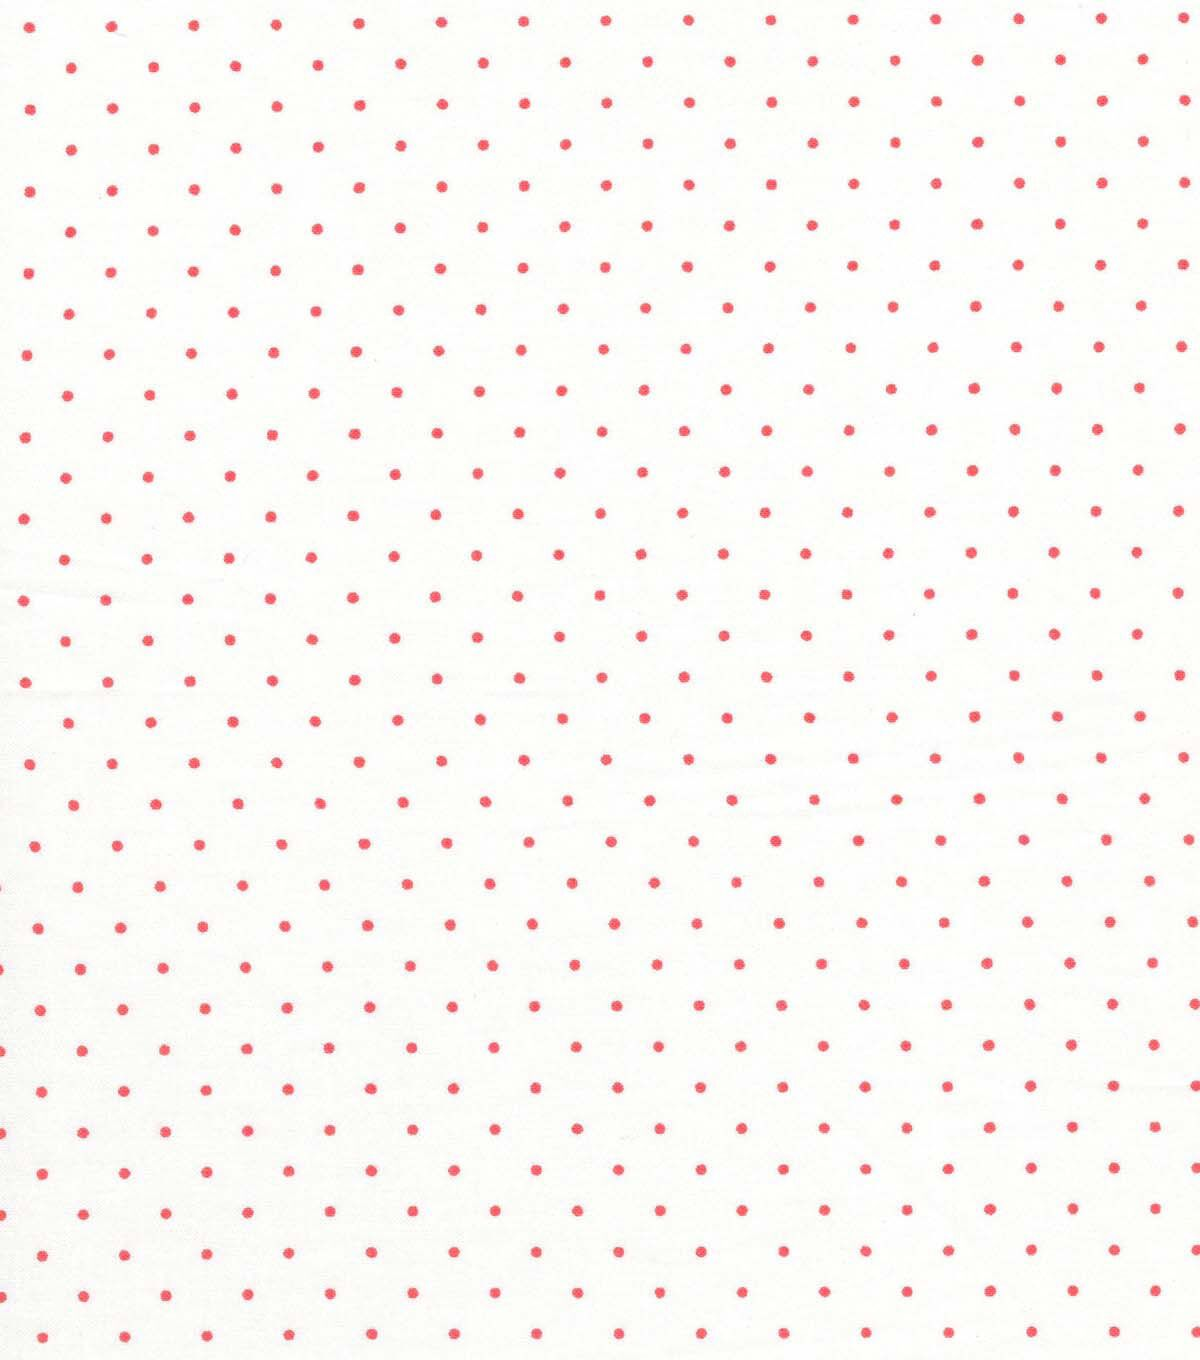 Quilter's Showcase Cotton Fabric Coral Swiss Dots on Sugar , #Aff, #SPONSORED, #Cotton, #Showcase, #Dots, #Fabric